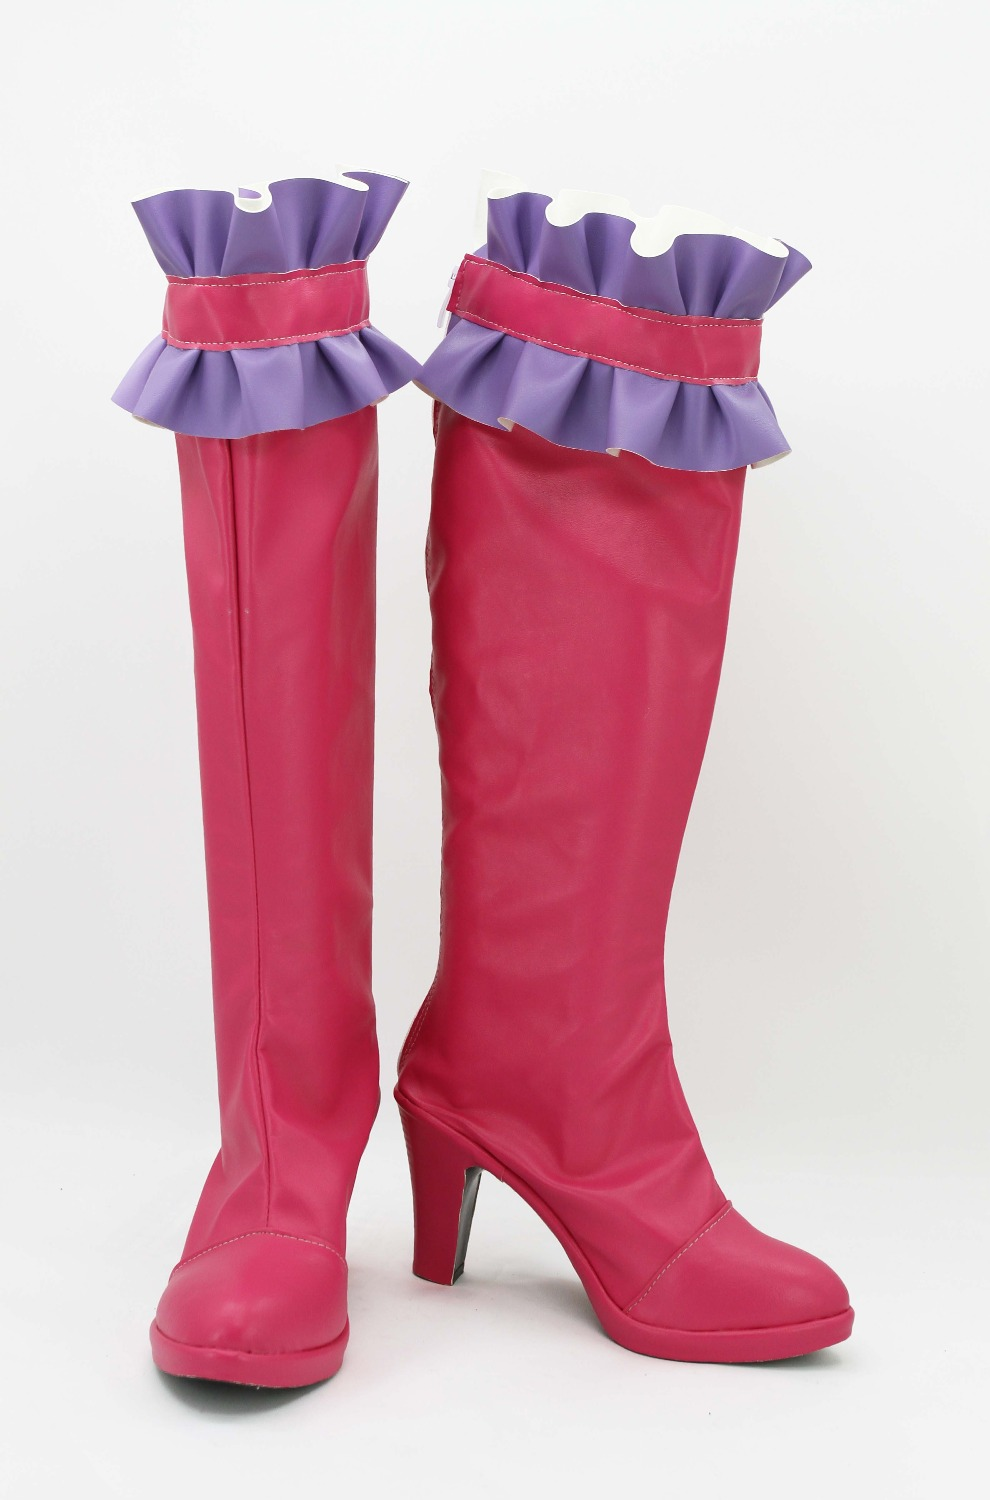 Webgame NO GAME NO LIFE Cosplay Shoes Anime Party Boots Tailor-Made